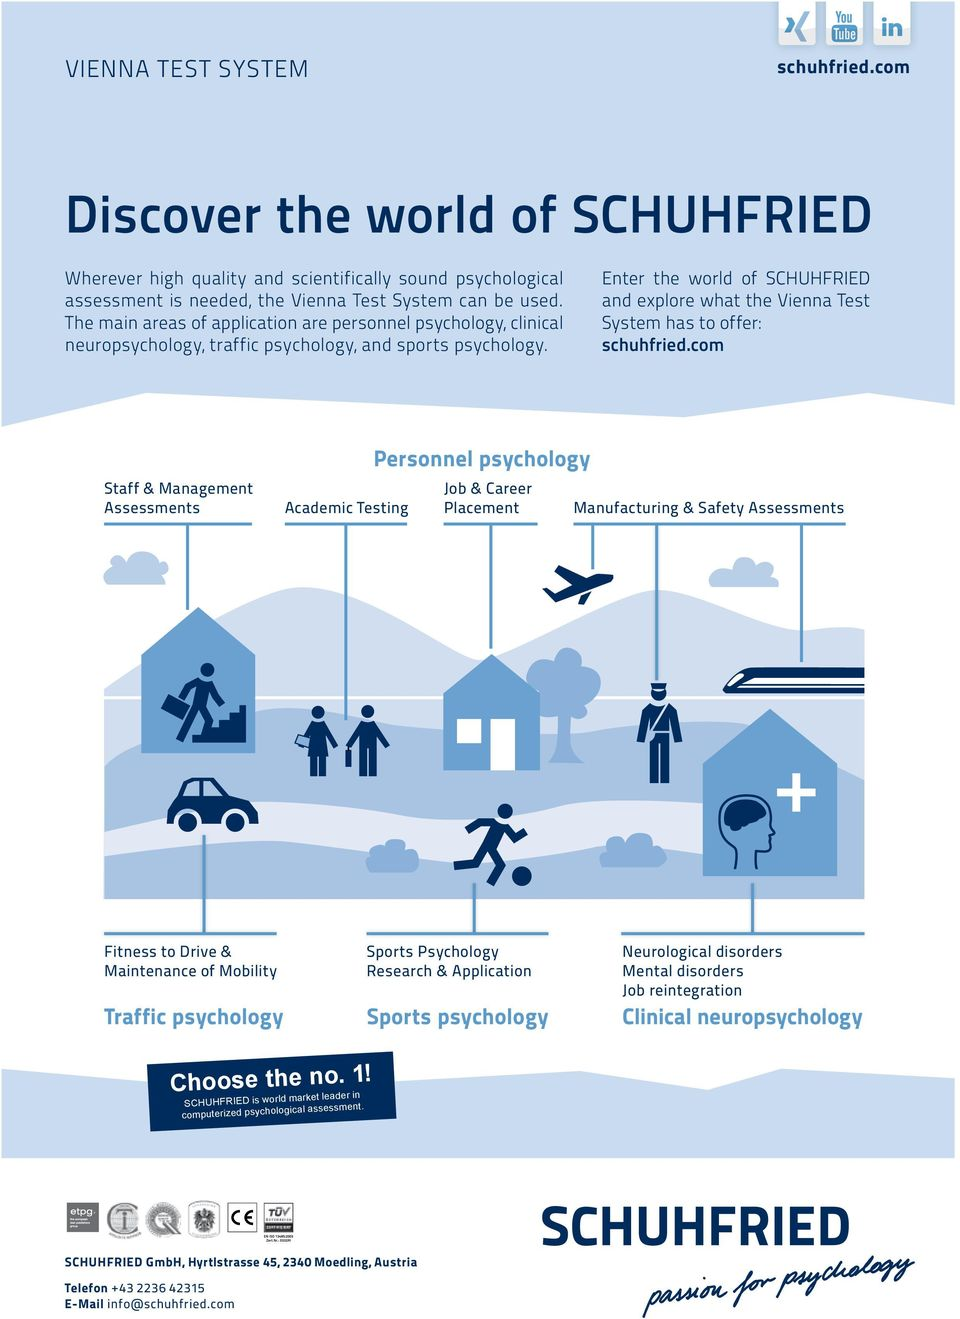 Enter the world of SCHUHFRIED and explore what the Vienna Test System has to offer: schuhfried.